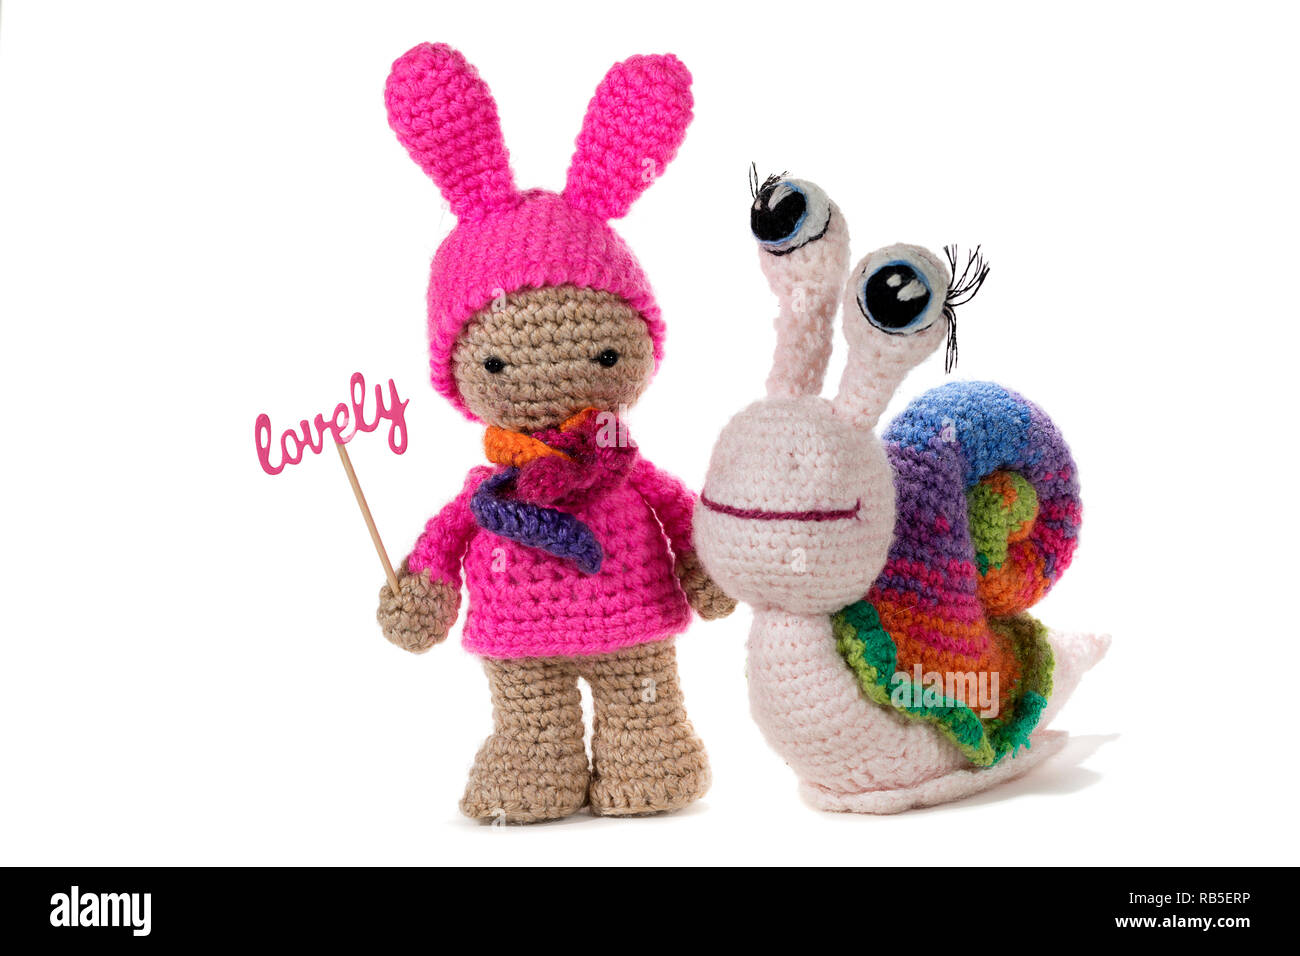 hight resolution of crochet girl holding sign lovely and crochet rainbow snail on white background amigurumi